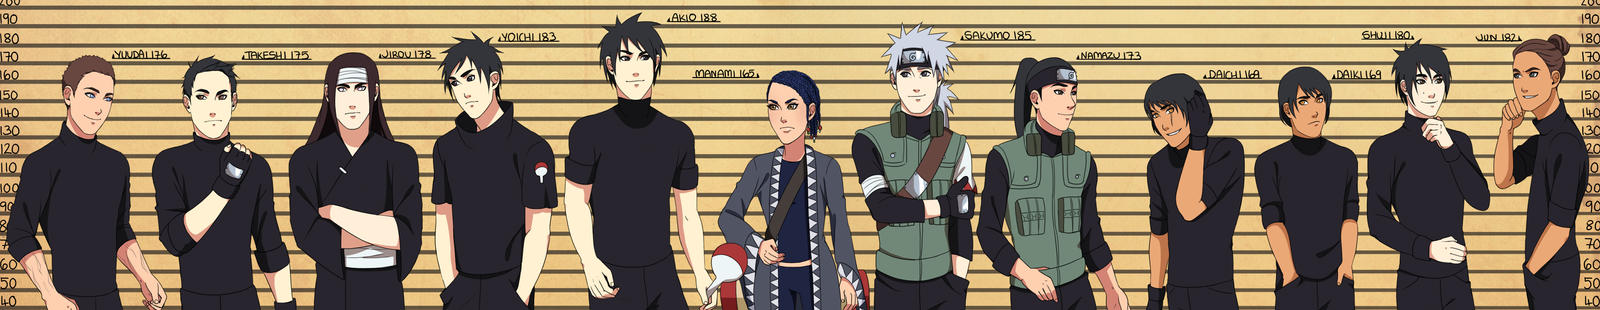 CM: Giant Height Chart by Chloeeh